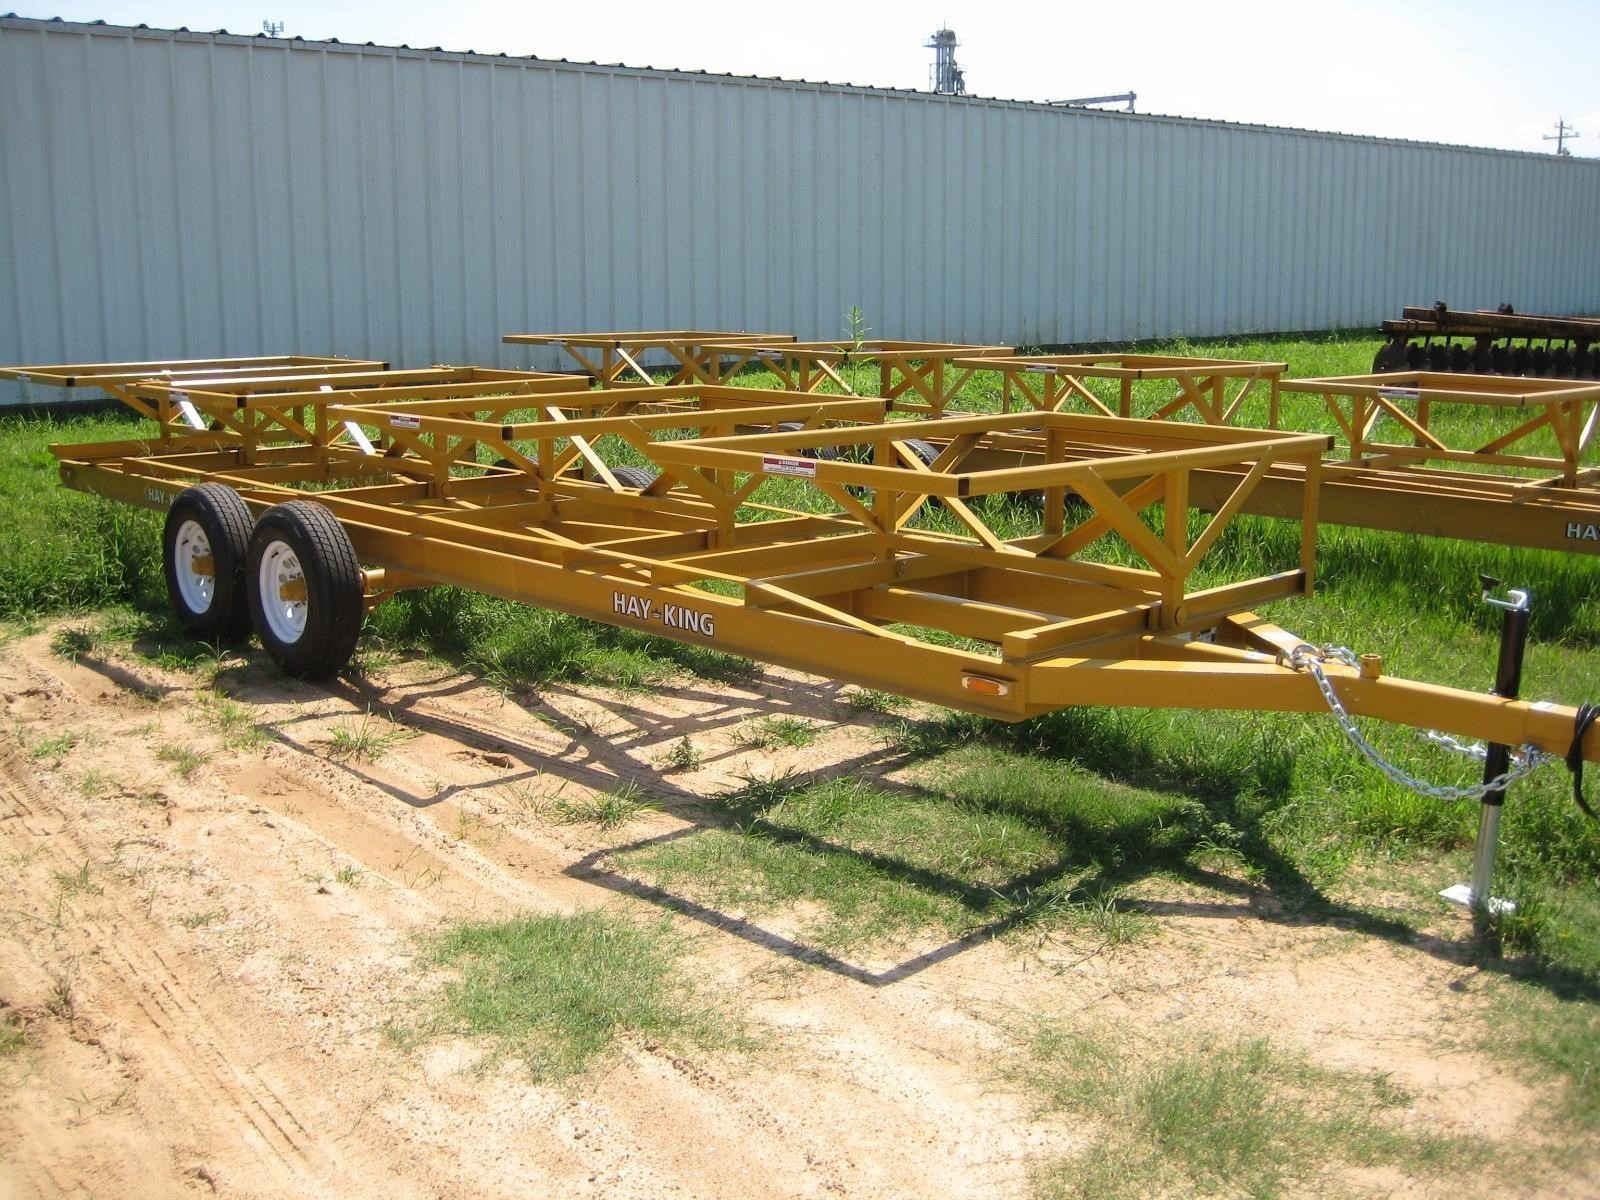 2019 Hay King 4BBP Bale Wagons and Trailer